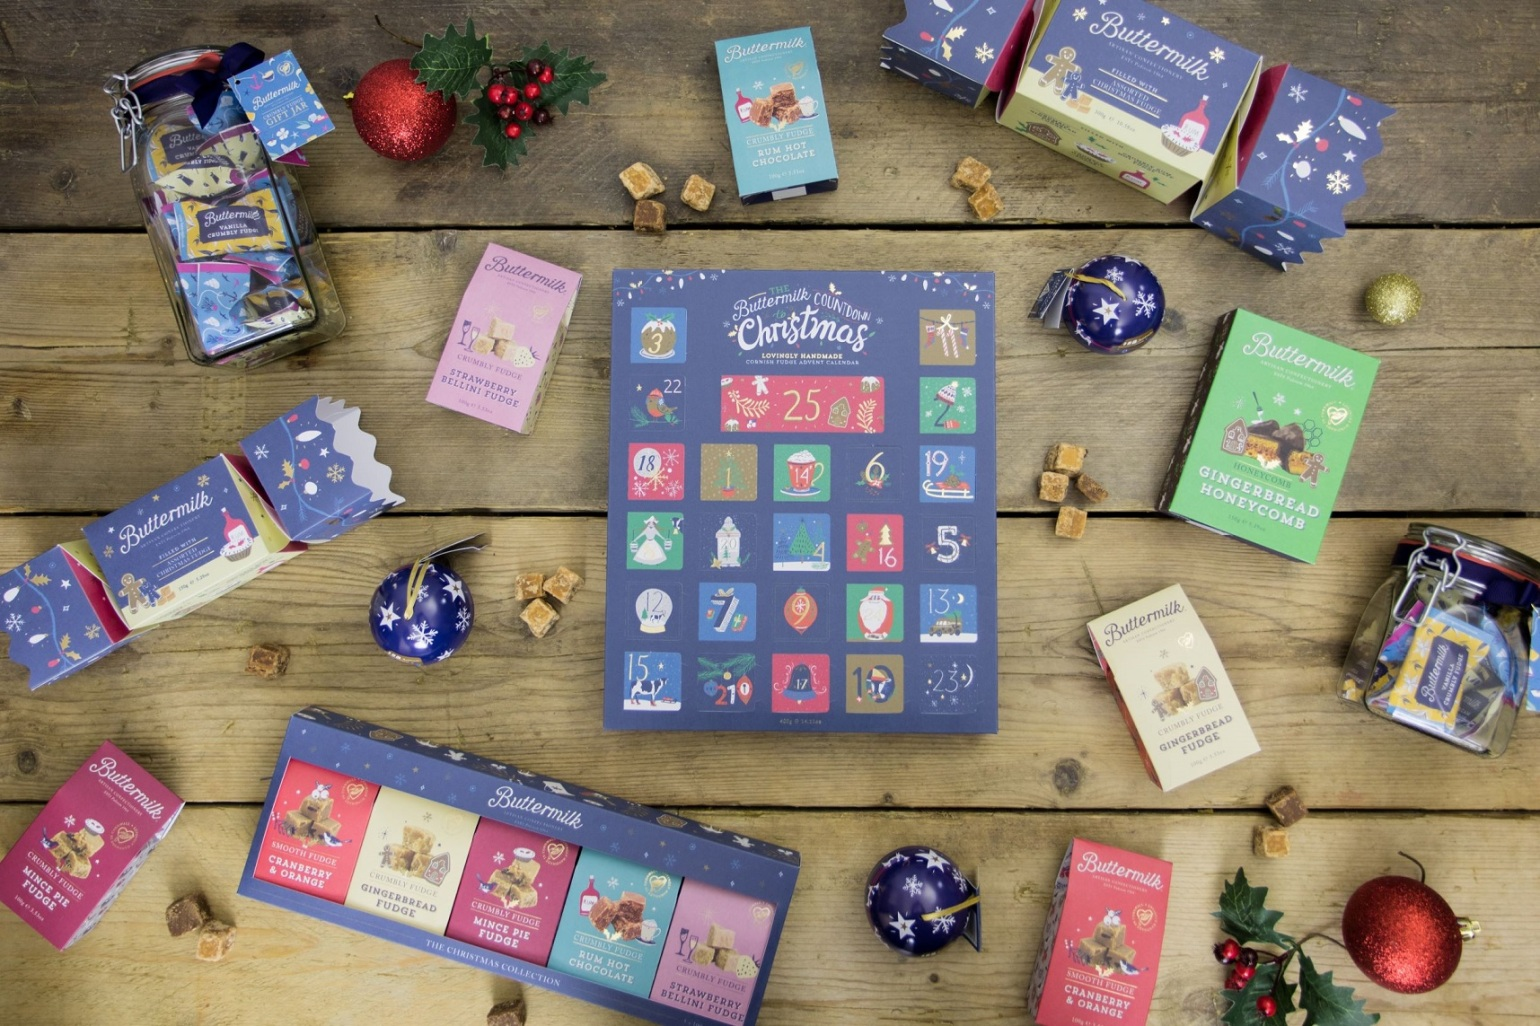 Buttermilk Christmas advent calendar